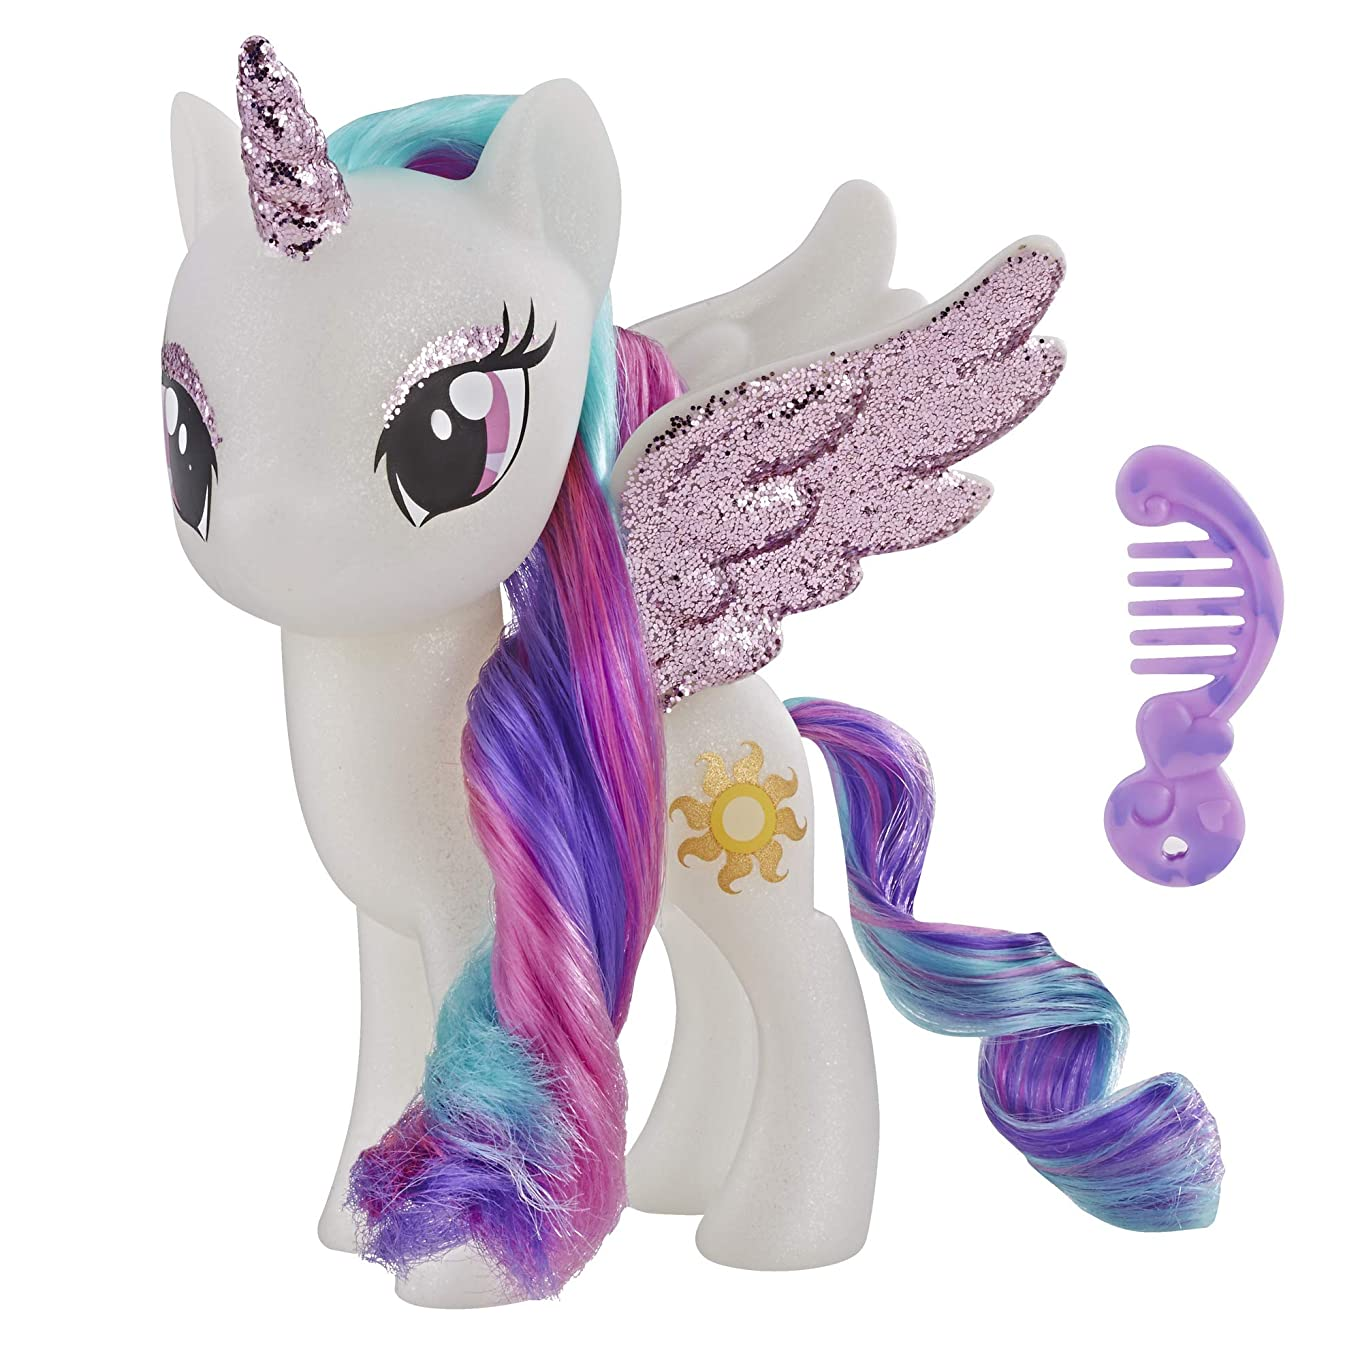 My Little Pony Toy Princess Celestia – Sparkling 6-inch Figure for Kids Ages 3 Years Old and Up